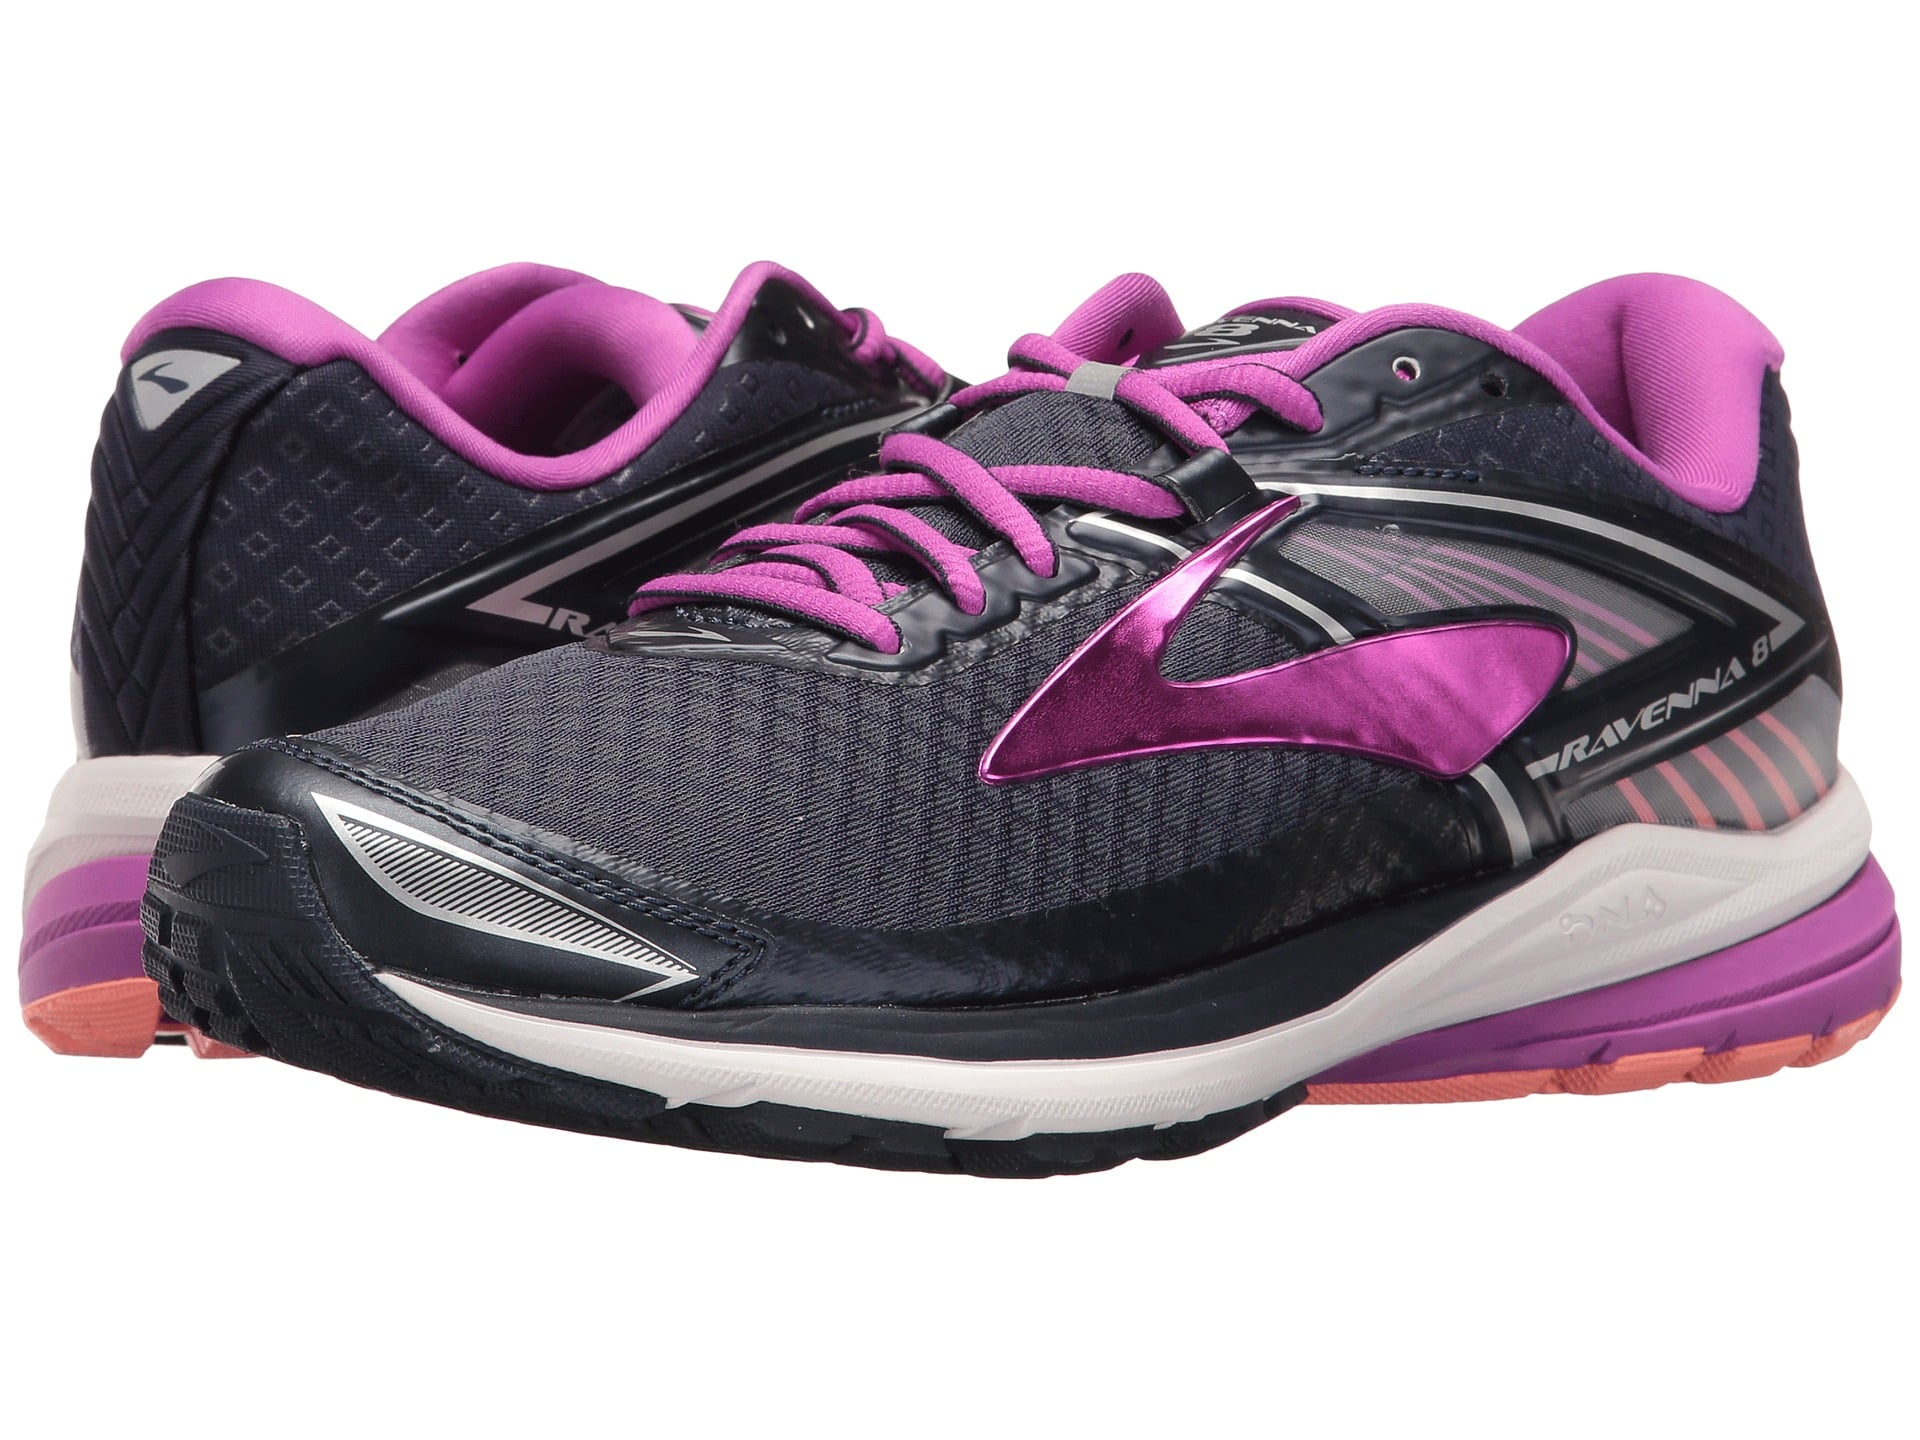 best rated women's running shoes 218